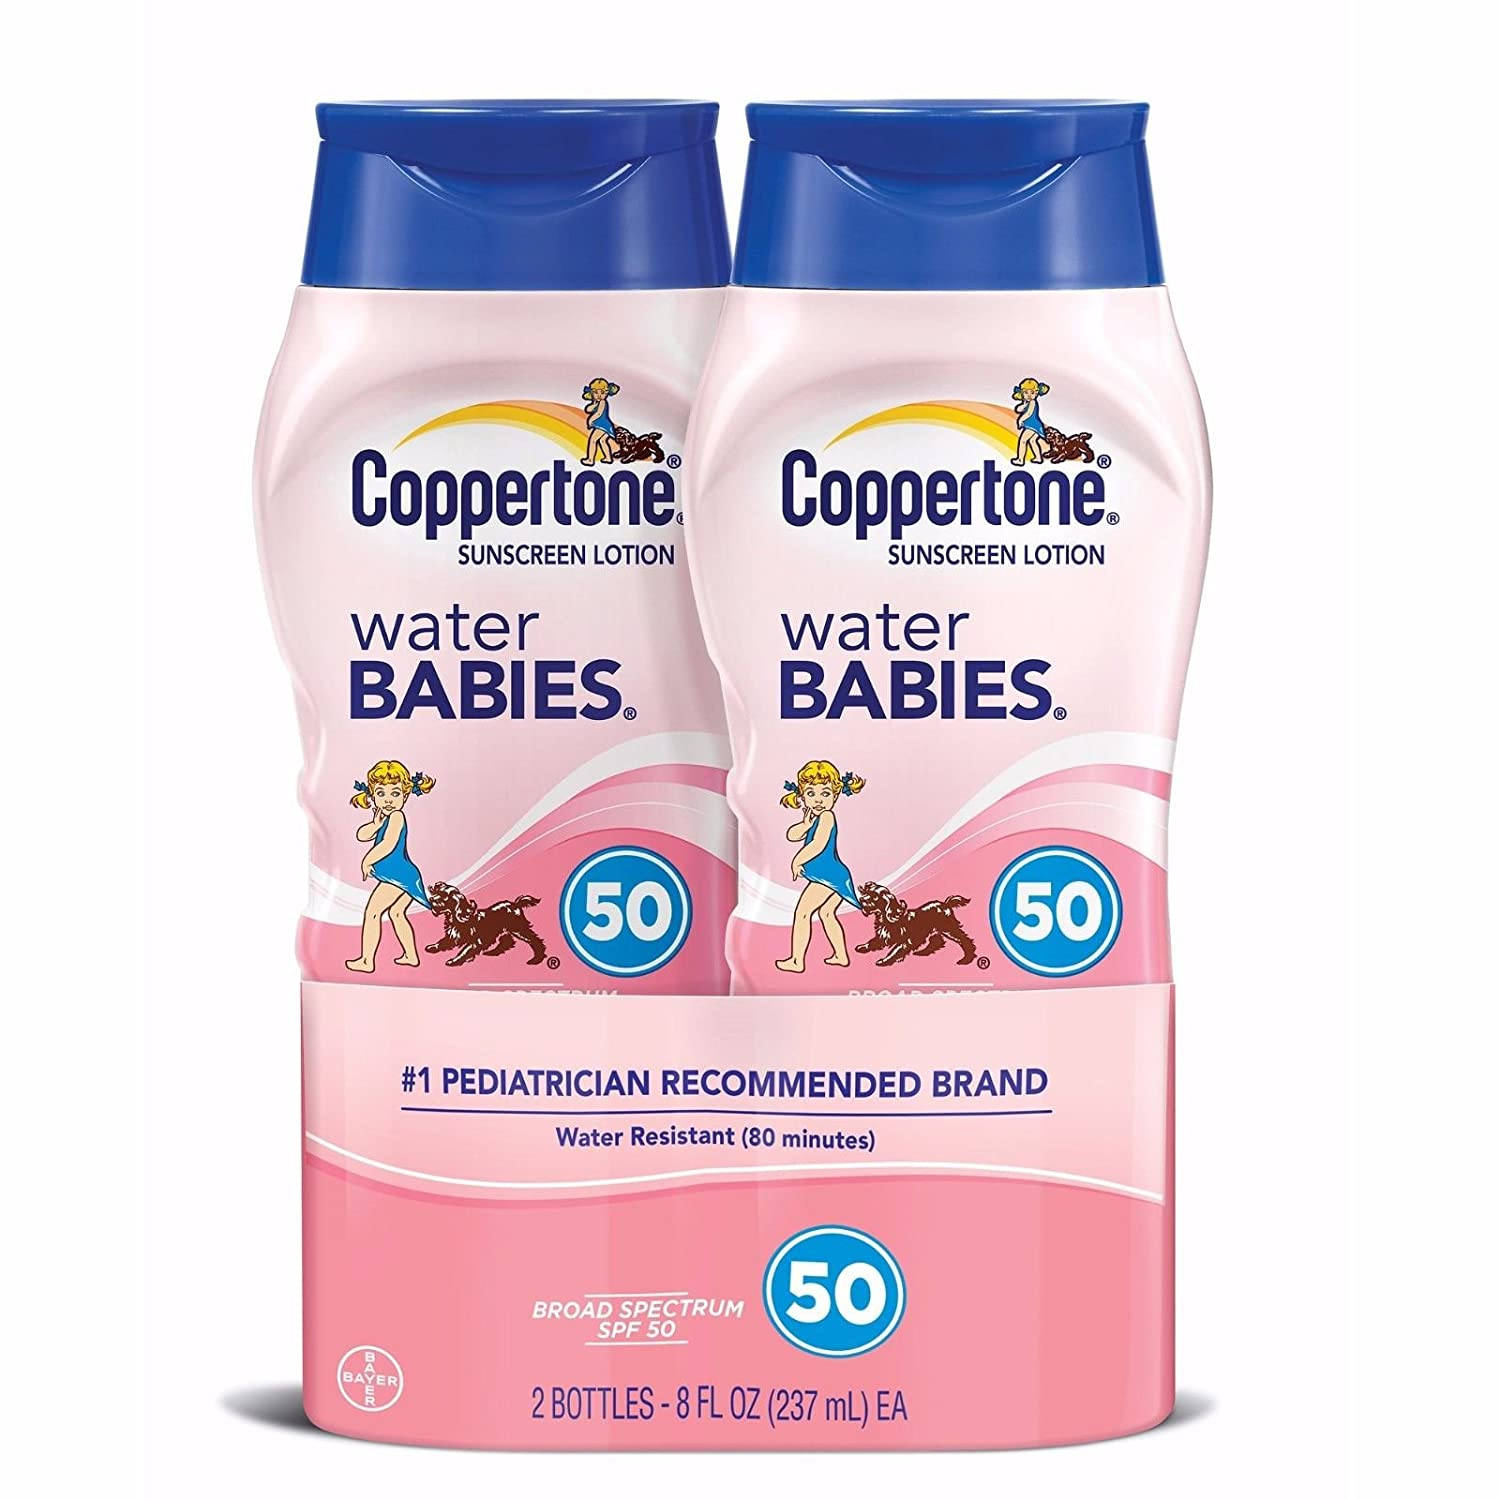 Coppertone Water Babies Sunscreen Lotion, SPF 50, 8 oz. (Pack of 2)